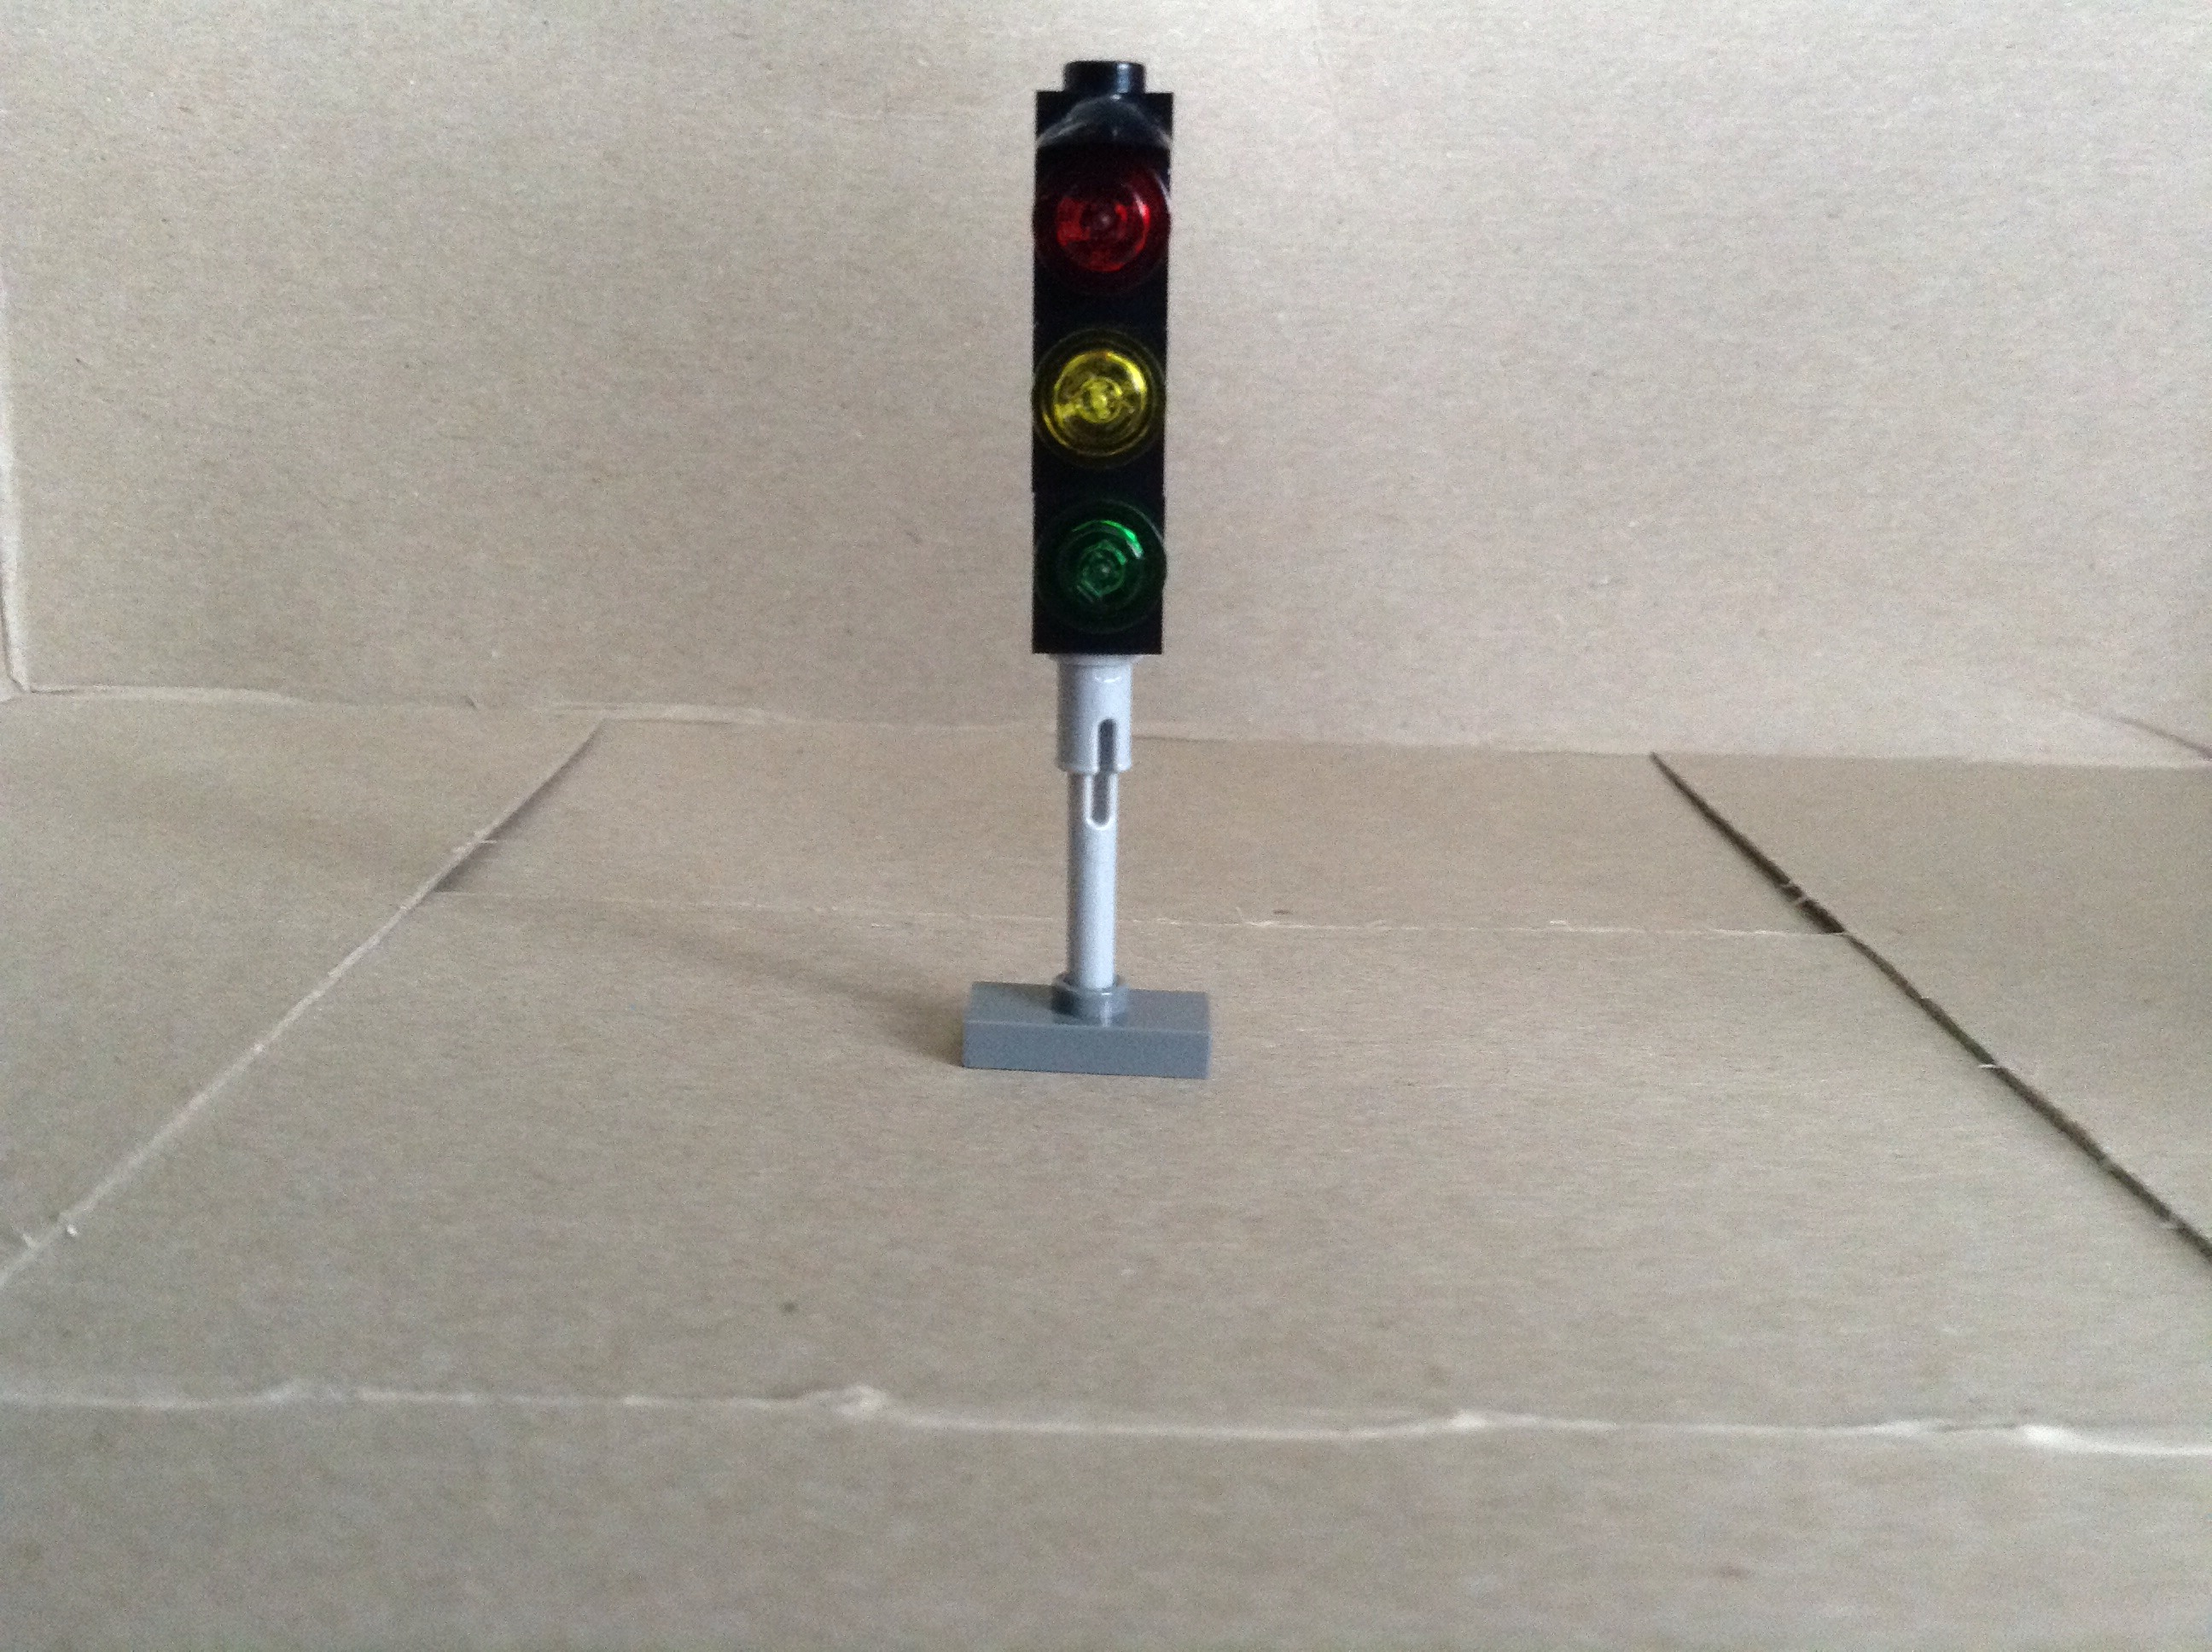 Picture of The Traffic Light